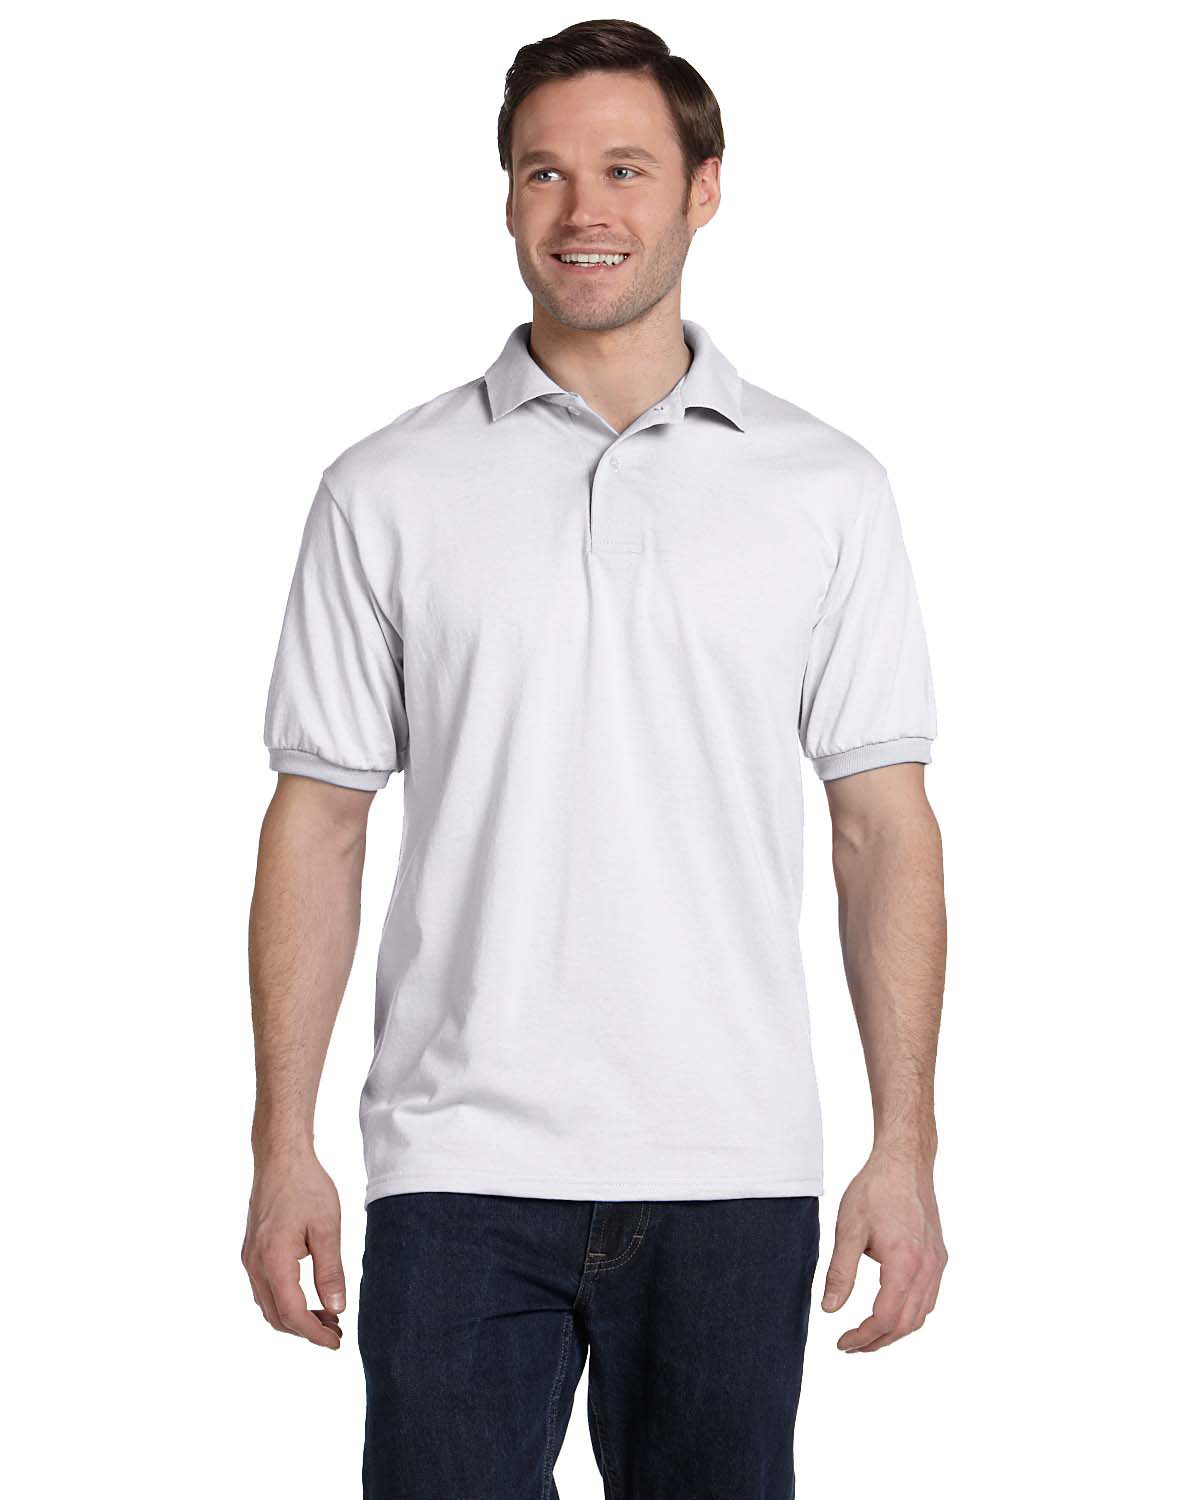 Hanes 054 Men 5.2 oz., 50/50 ComfortBlend EcoSmart Jersey Knit Polo at GotApparel